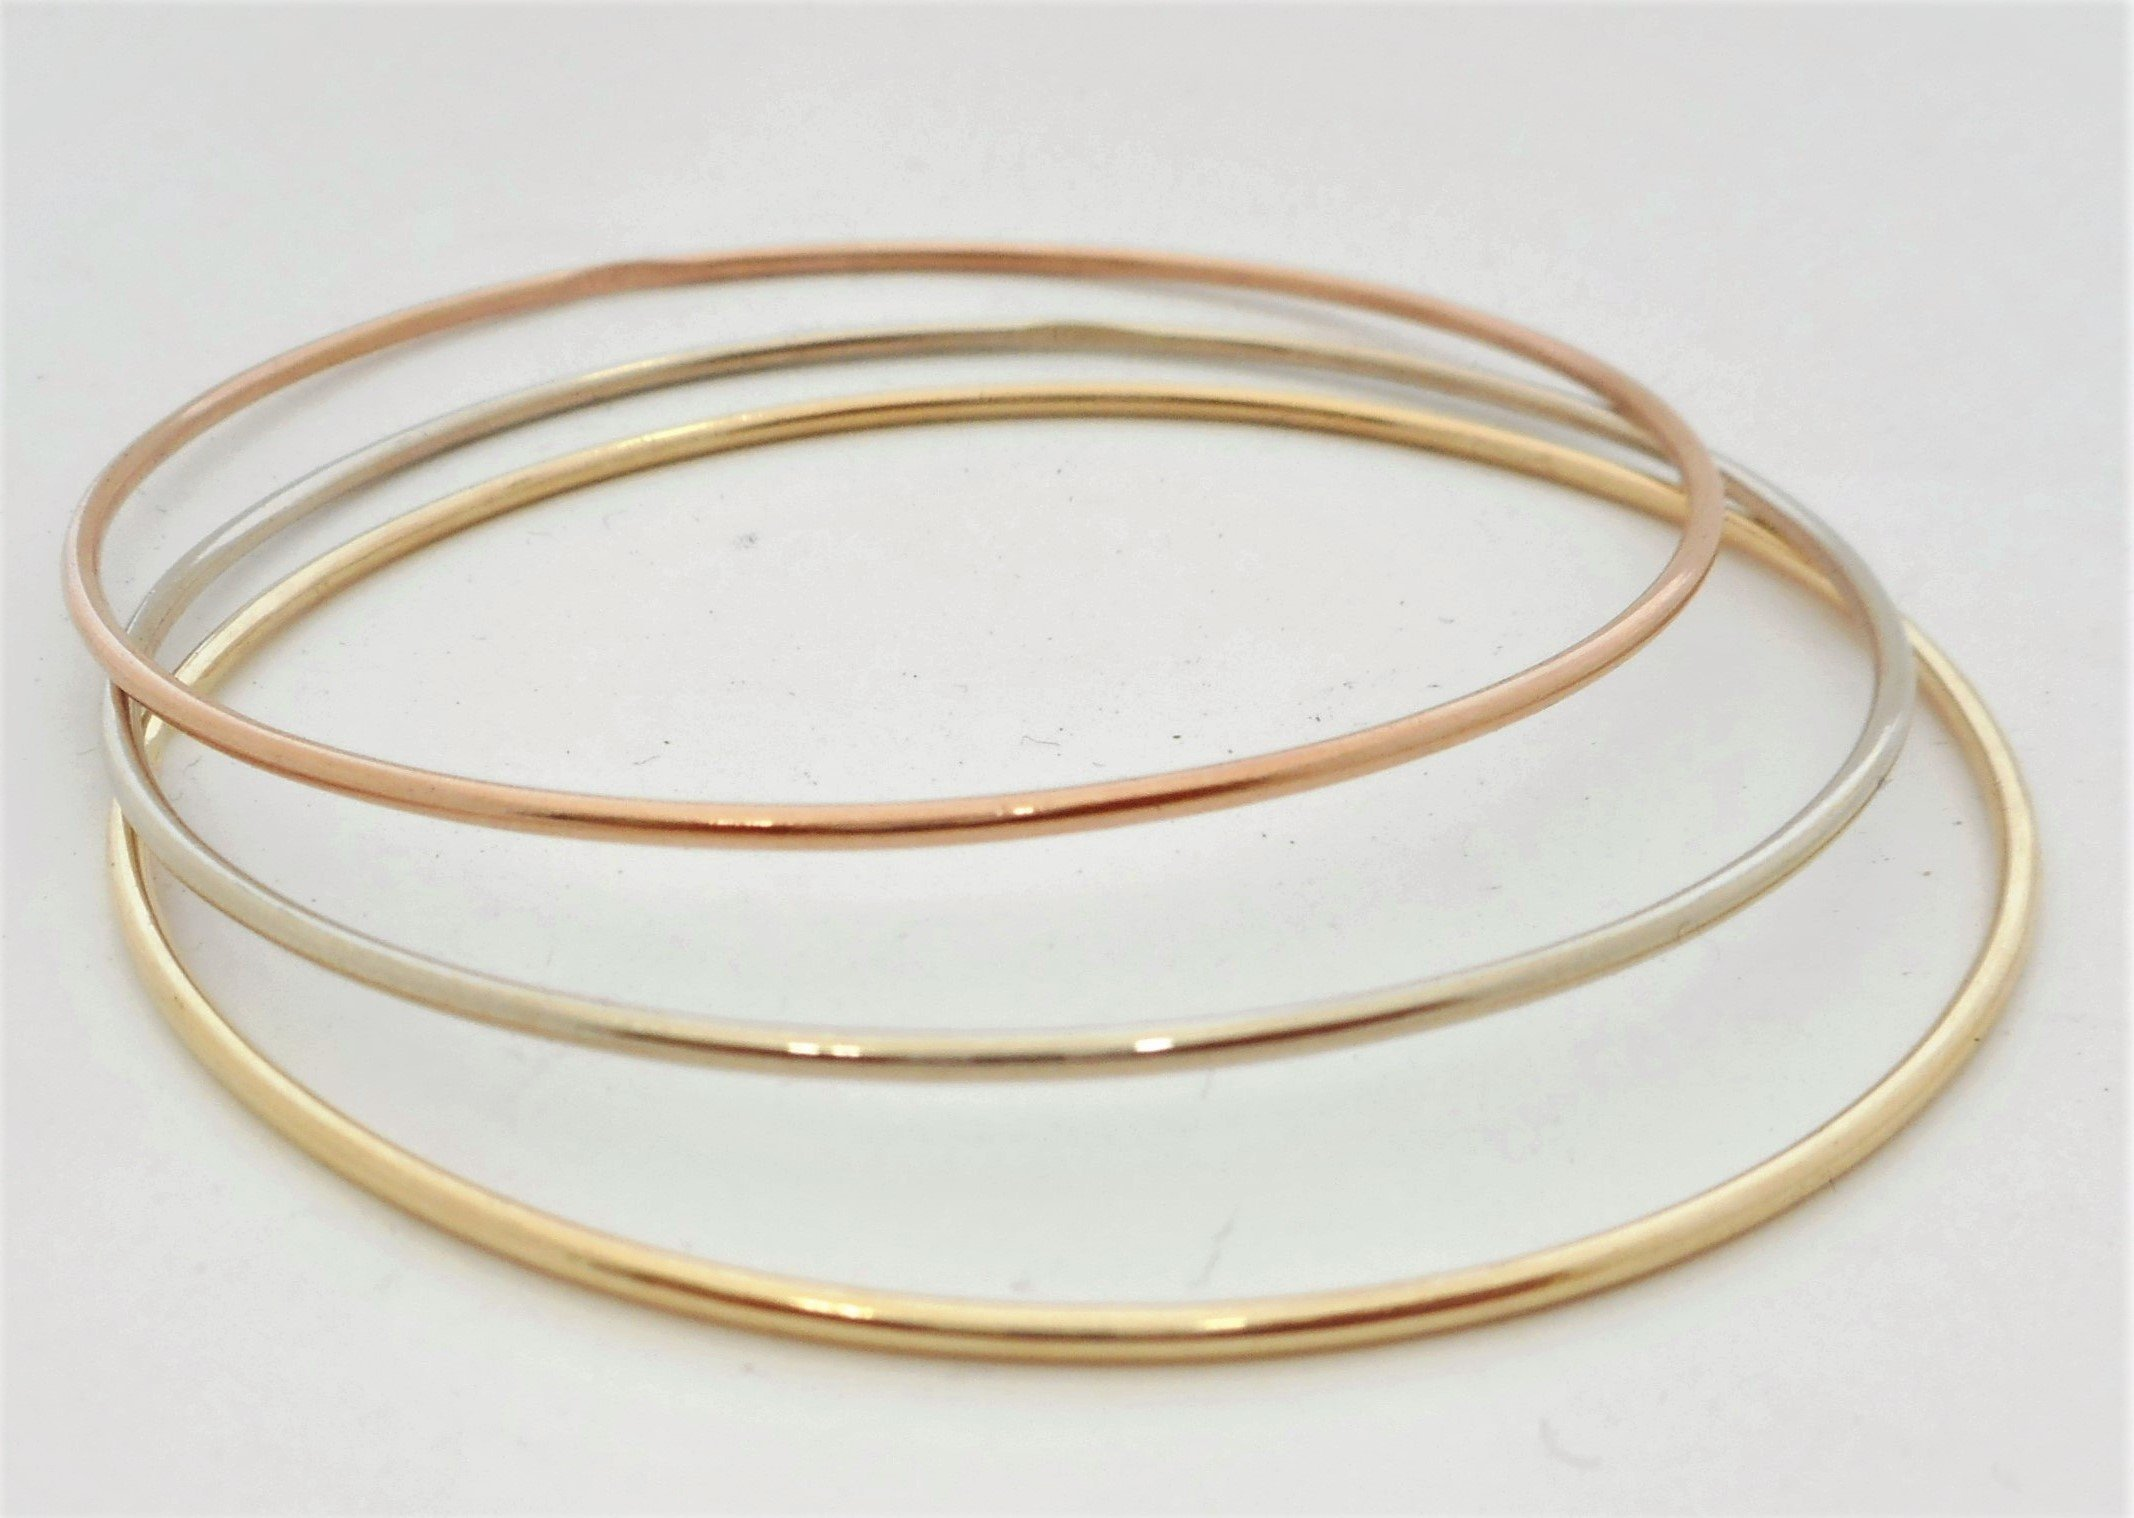 1.50 MM. Round Wire 10 K &14 K Solid Gold Slip-On Stacking Bangle/Bracelets Tricolor SOLID GOLD(NOT HOLLOW OR TUBE)